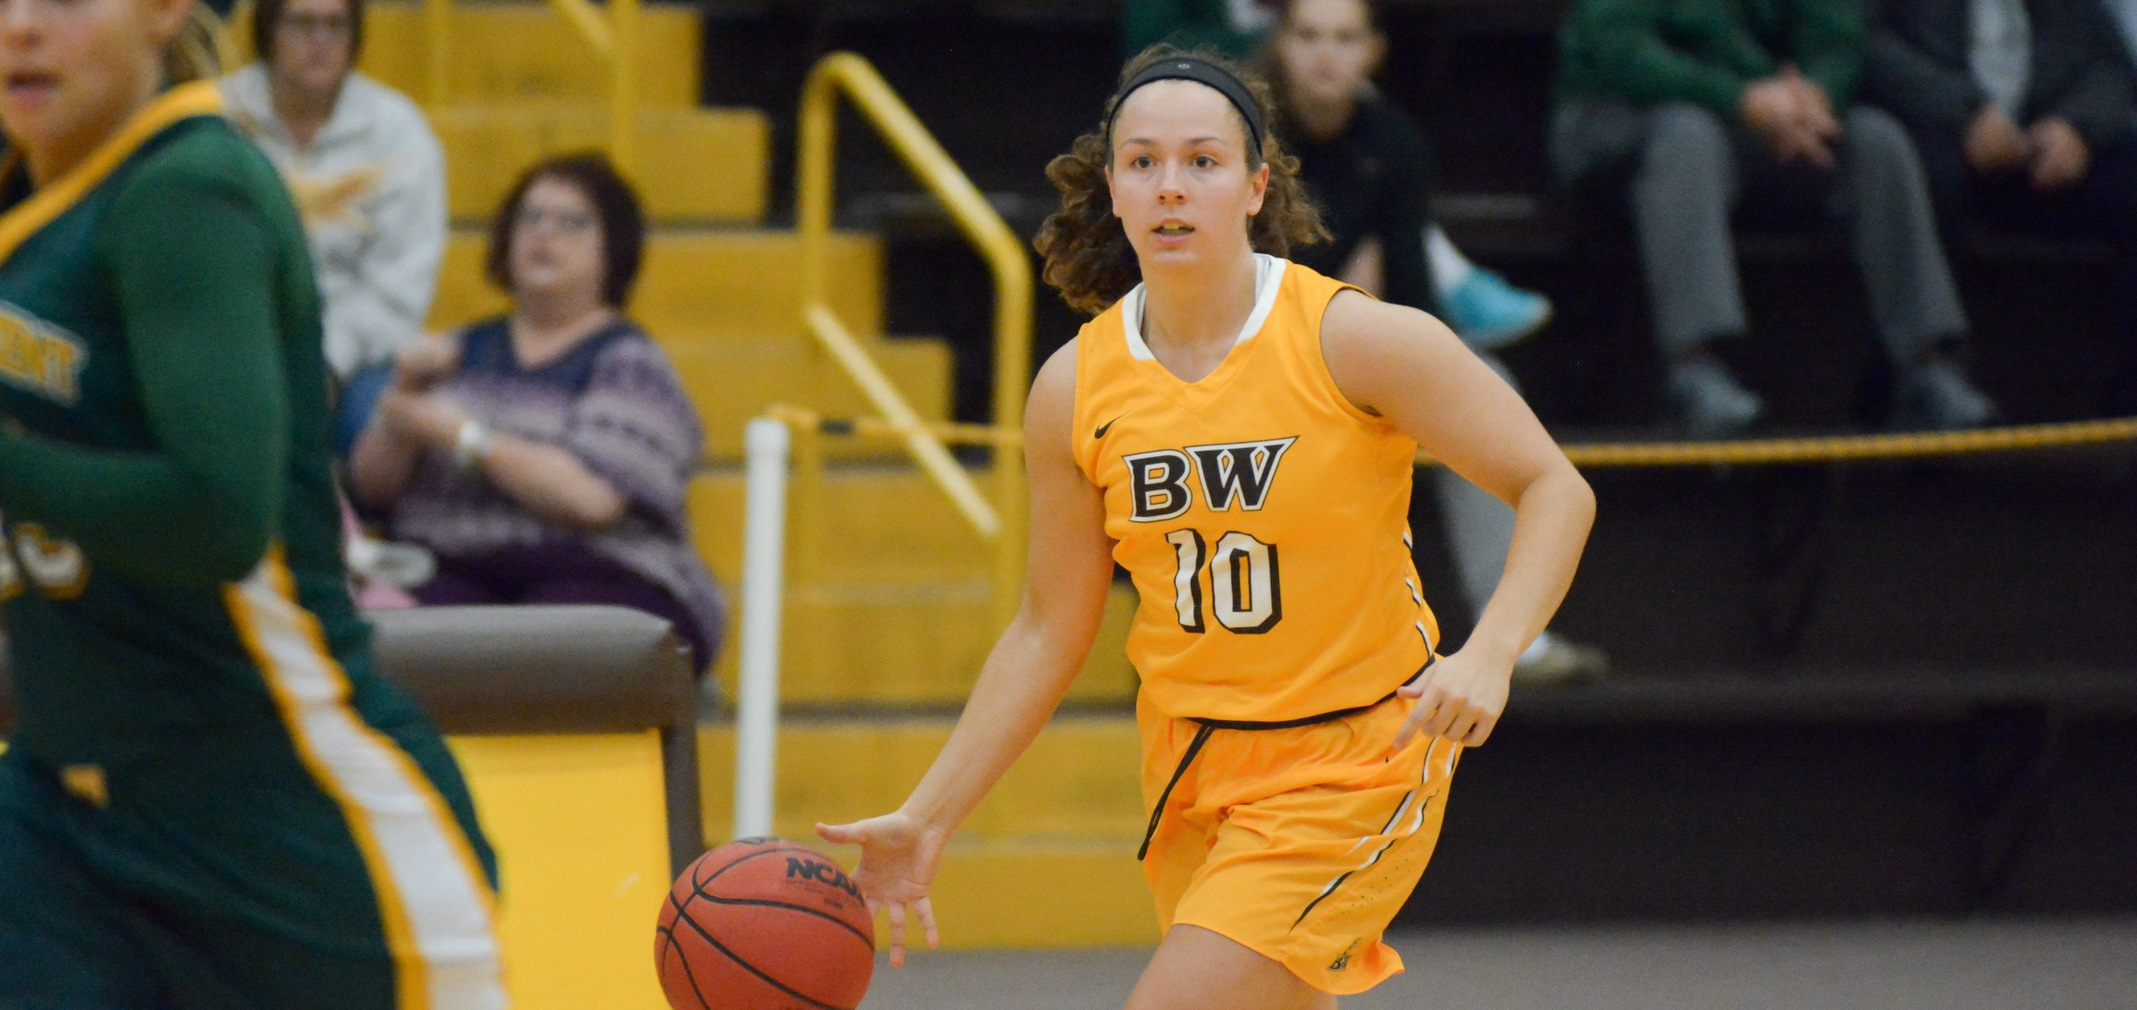 Senior Academic All-OAC guard Katie Smith (Photo by Steven Schuster)